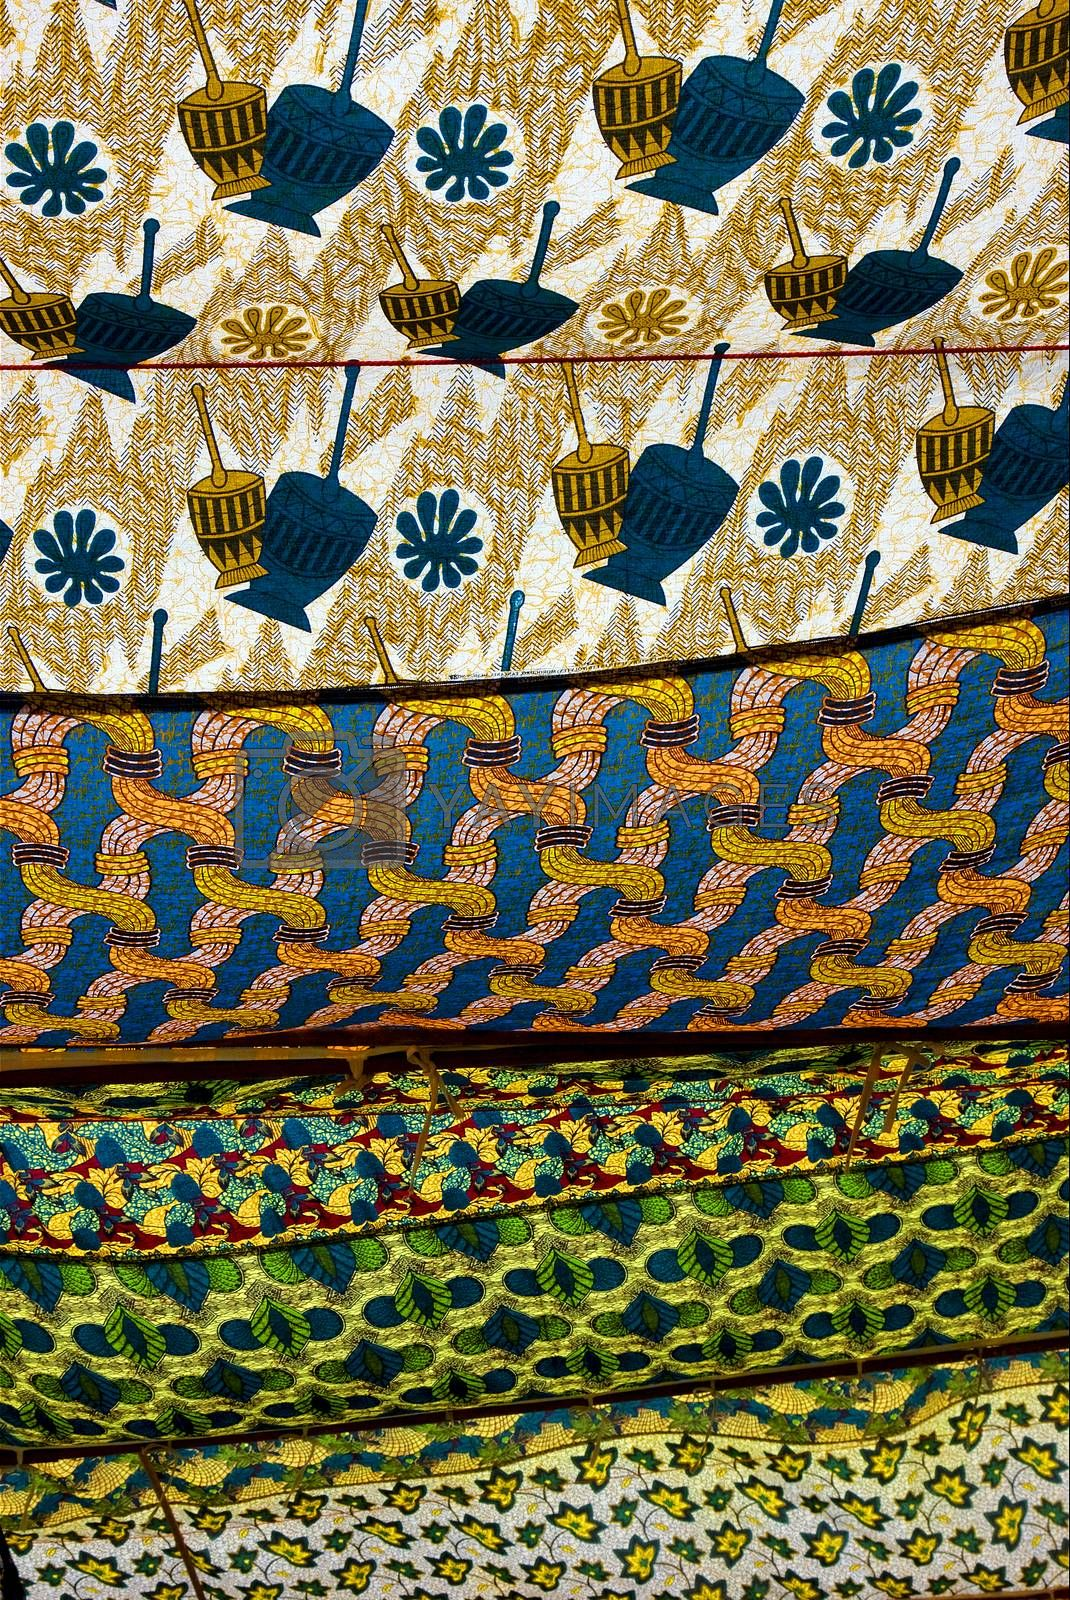 a cotton texture in zanzibar